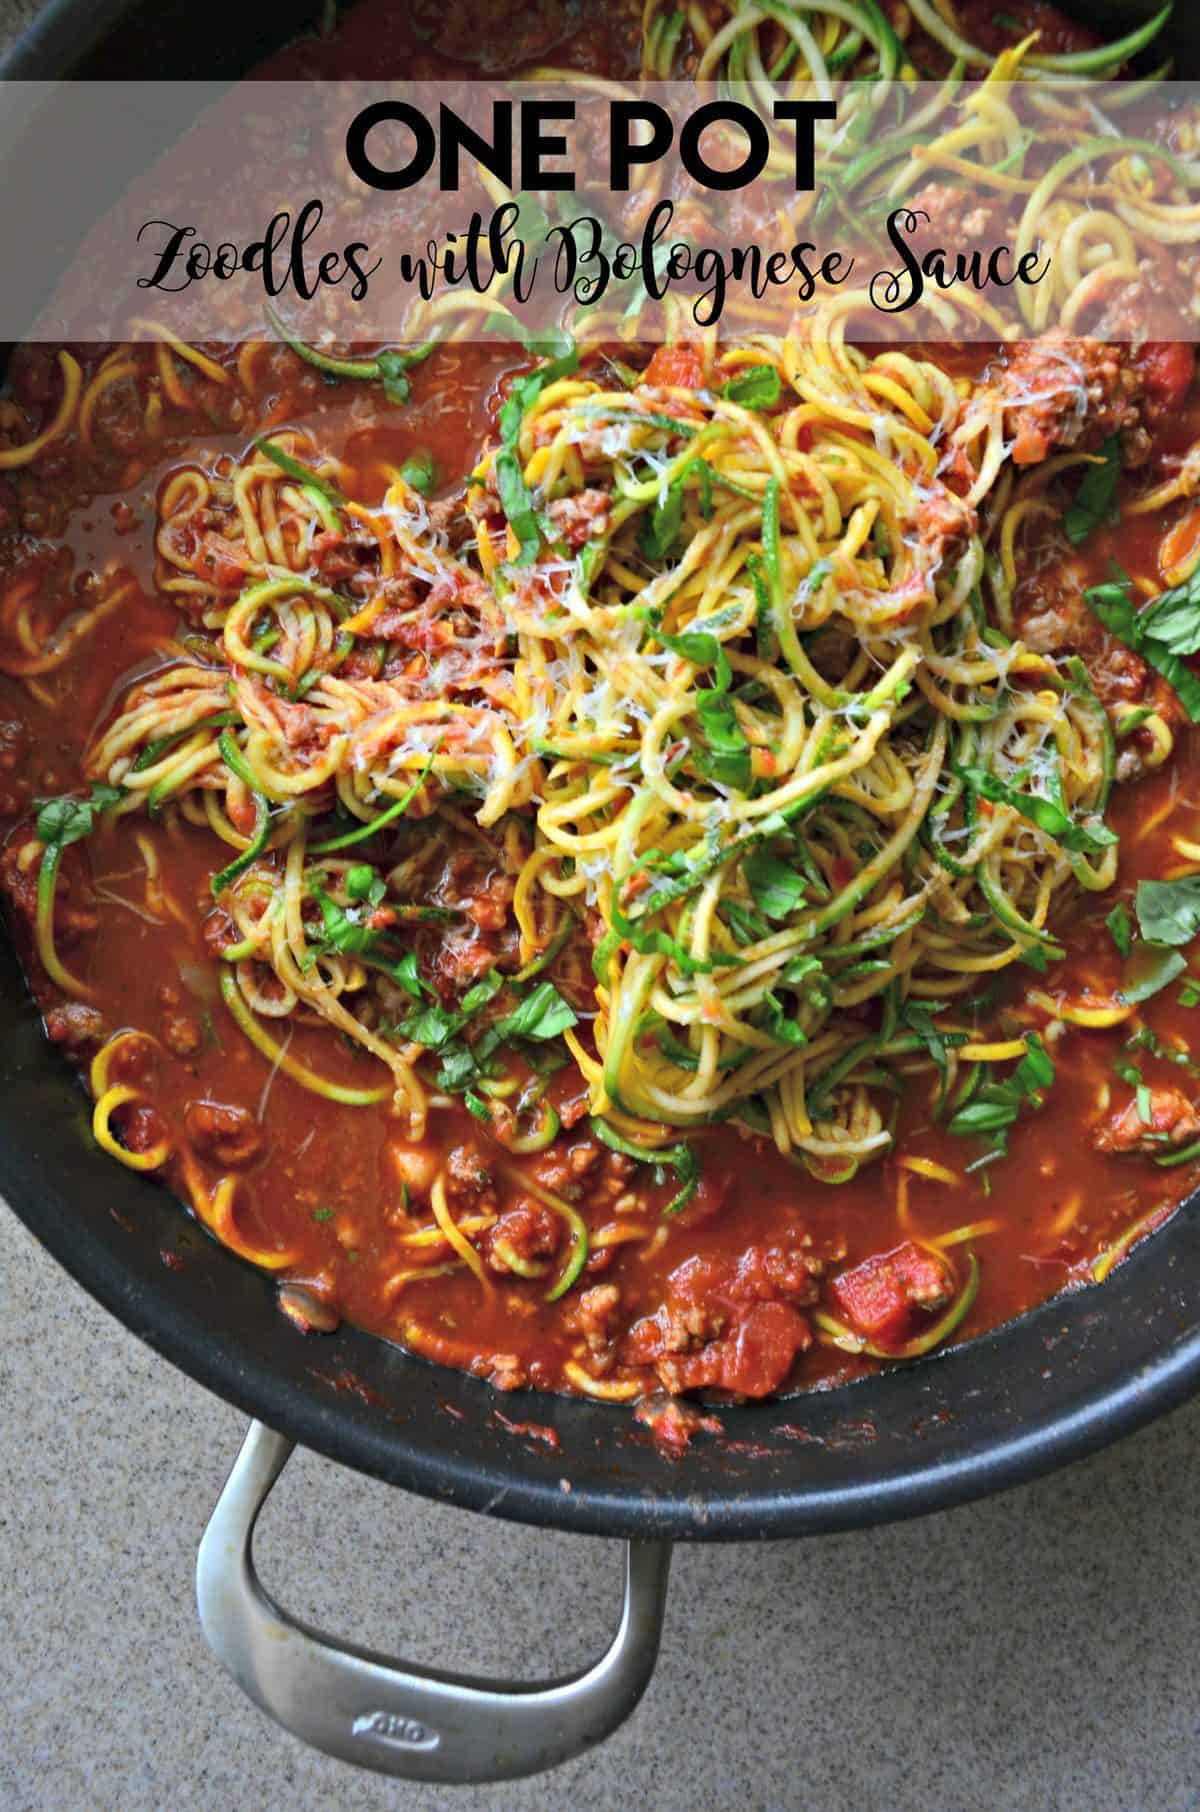 Close up of a pot of zoodles with meat sauce with text on image for Pinterest.